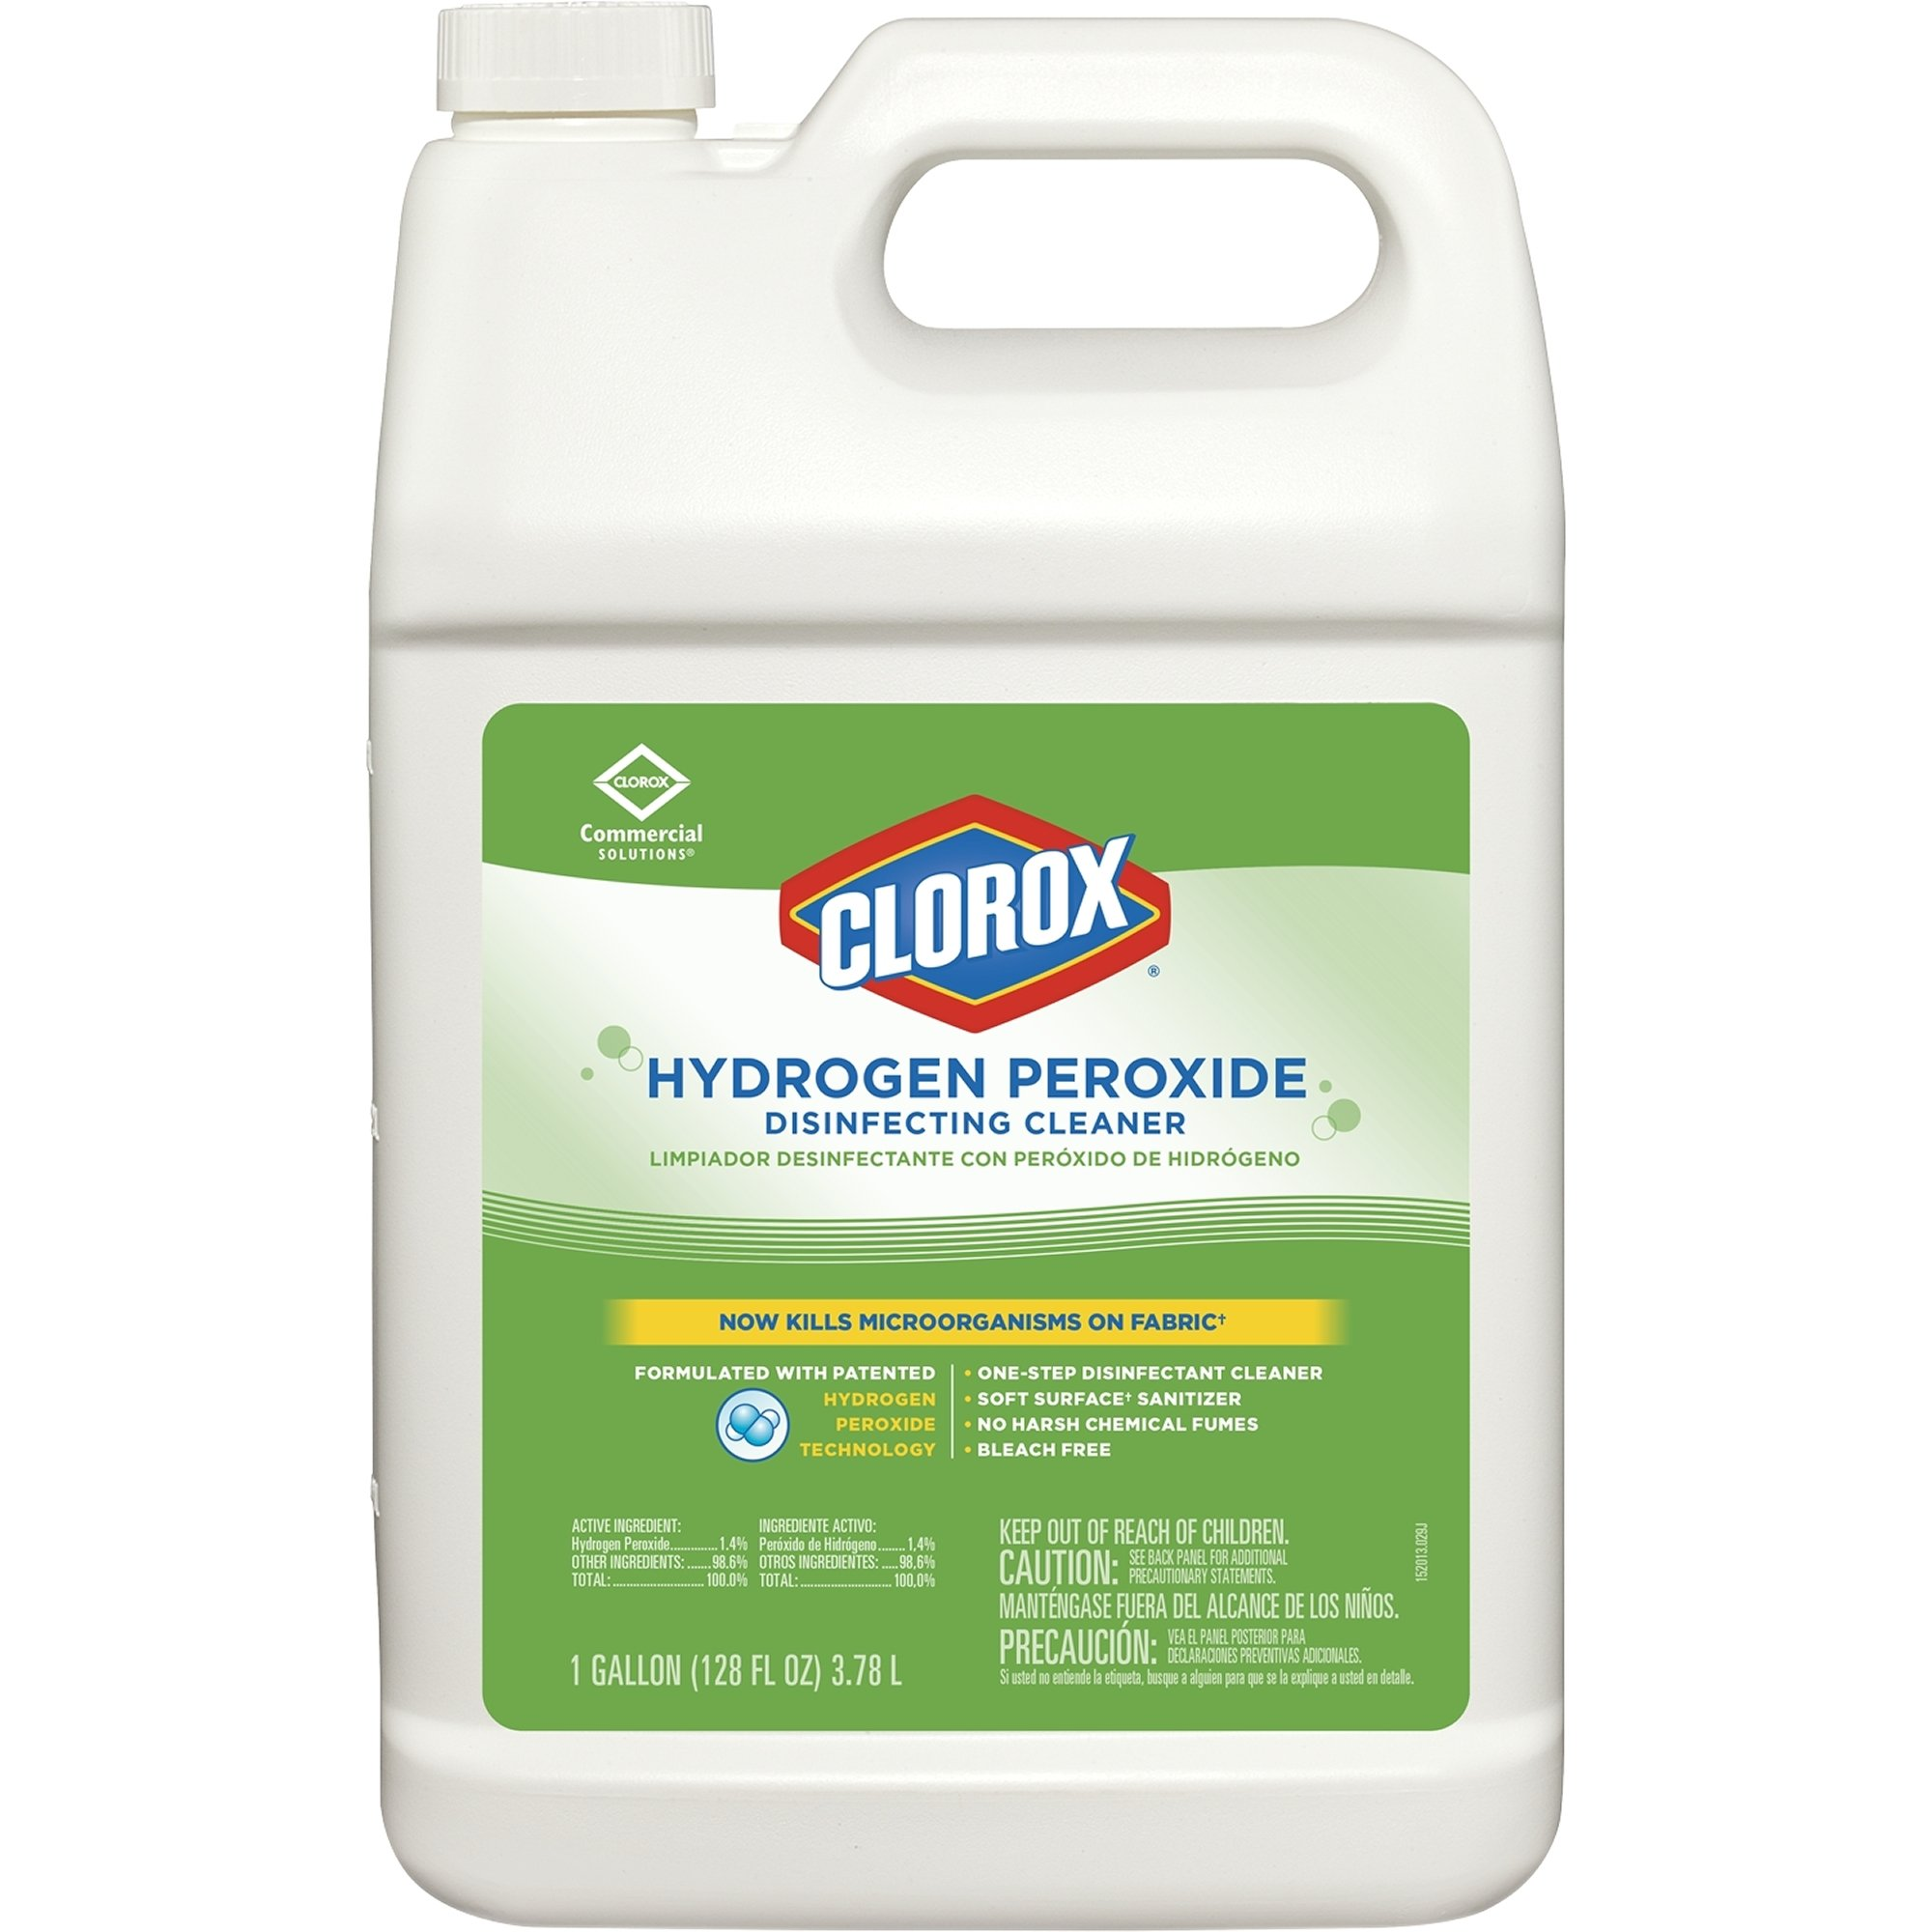 Clorox Hydrogen Peroxide Disinfecting Cleaner Refill, 128 Ounce, 4 Refills/Case (30833)